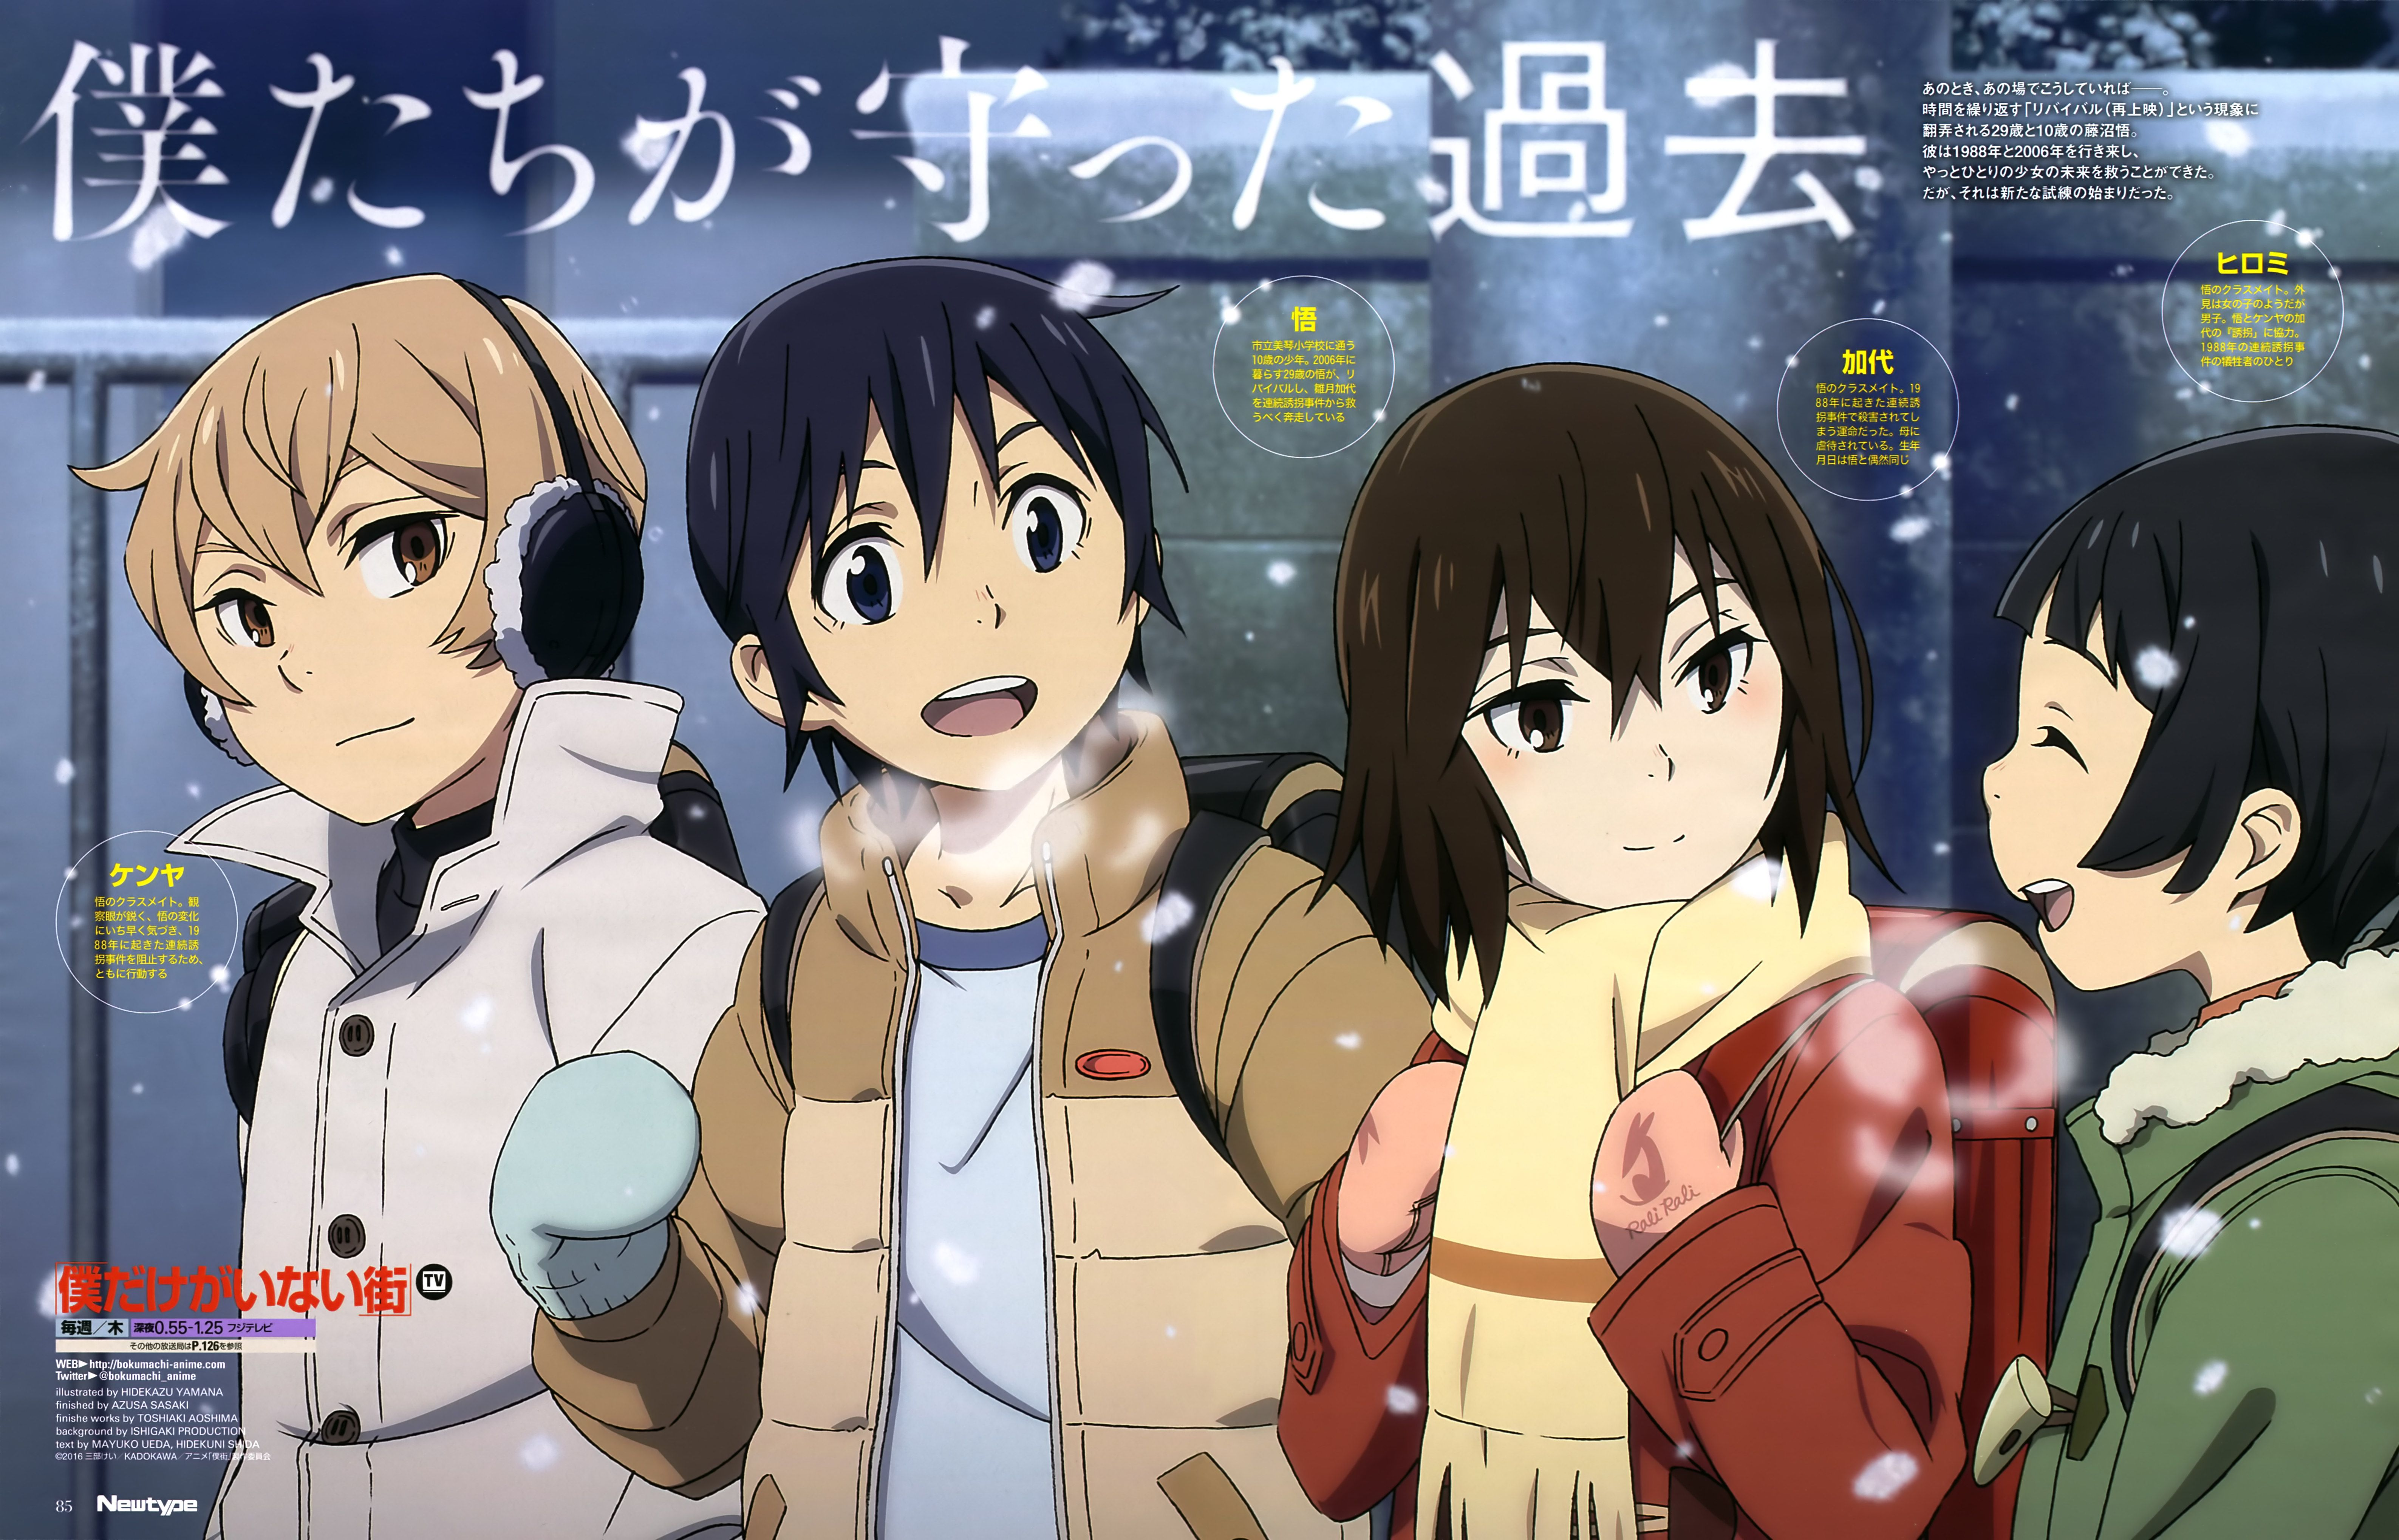 Pin By R On Erased A Town Without Me In 2020 Anime Anime Shows Anime Characters